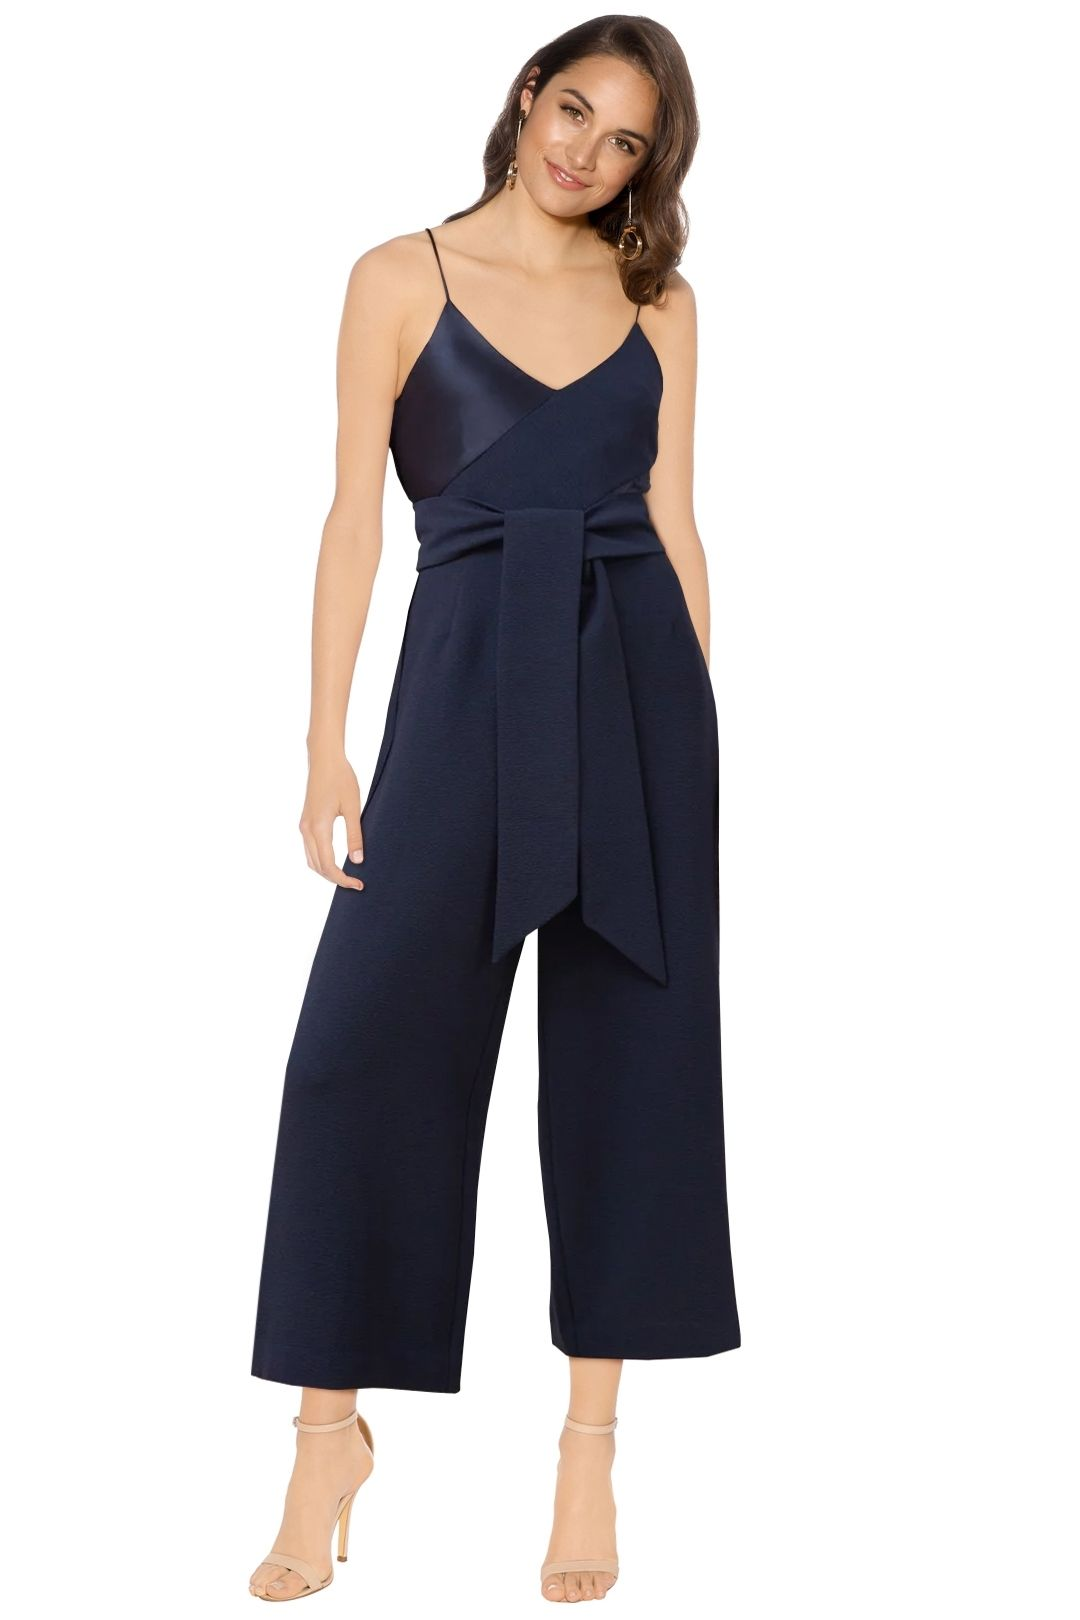 C/MEO Collective - Translation Jumpsuit - Navy - Front